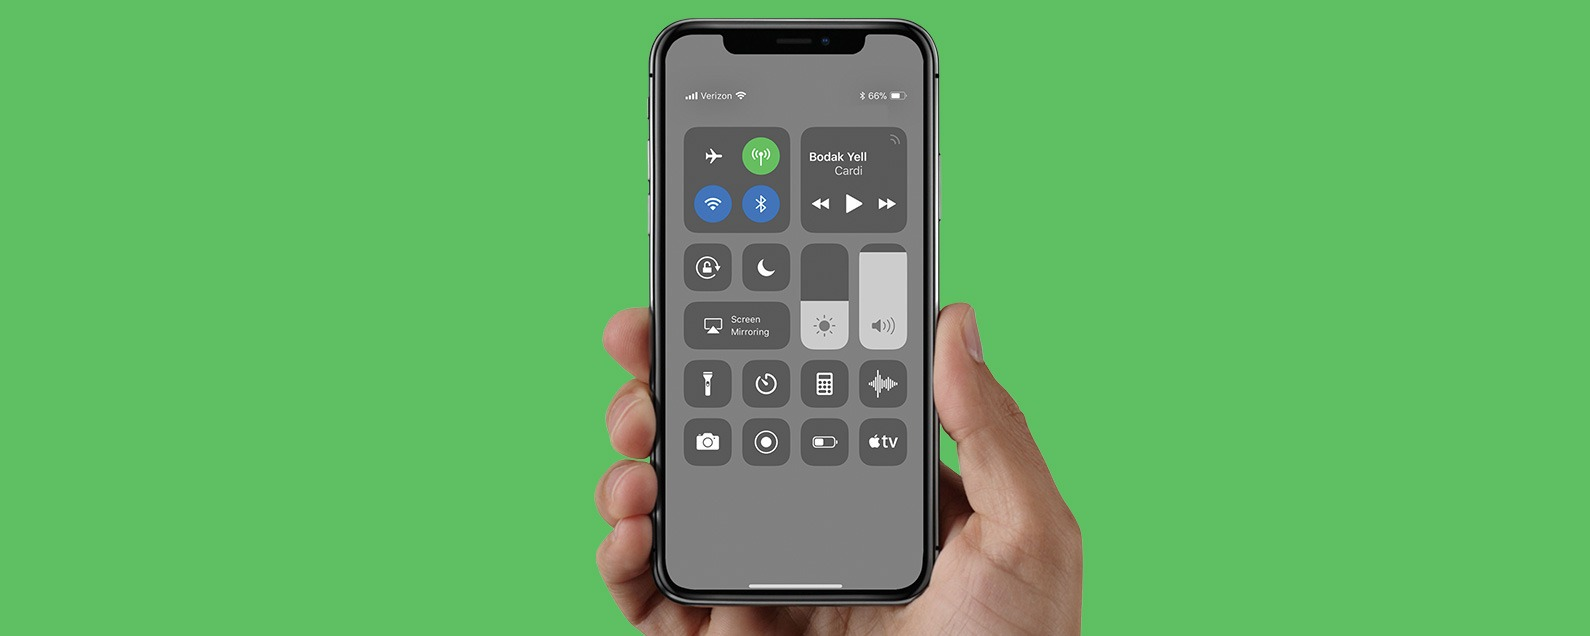 iPhone X: How to View Battery Percentage (Hint: Control Center)